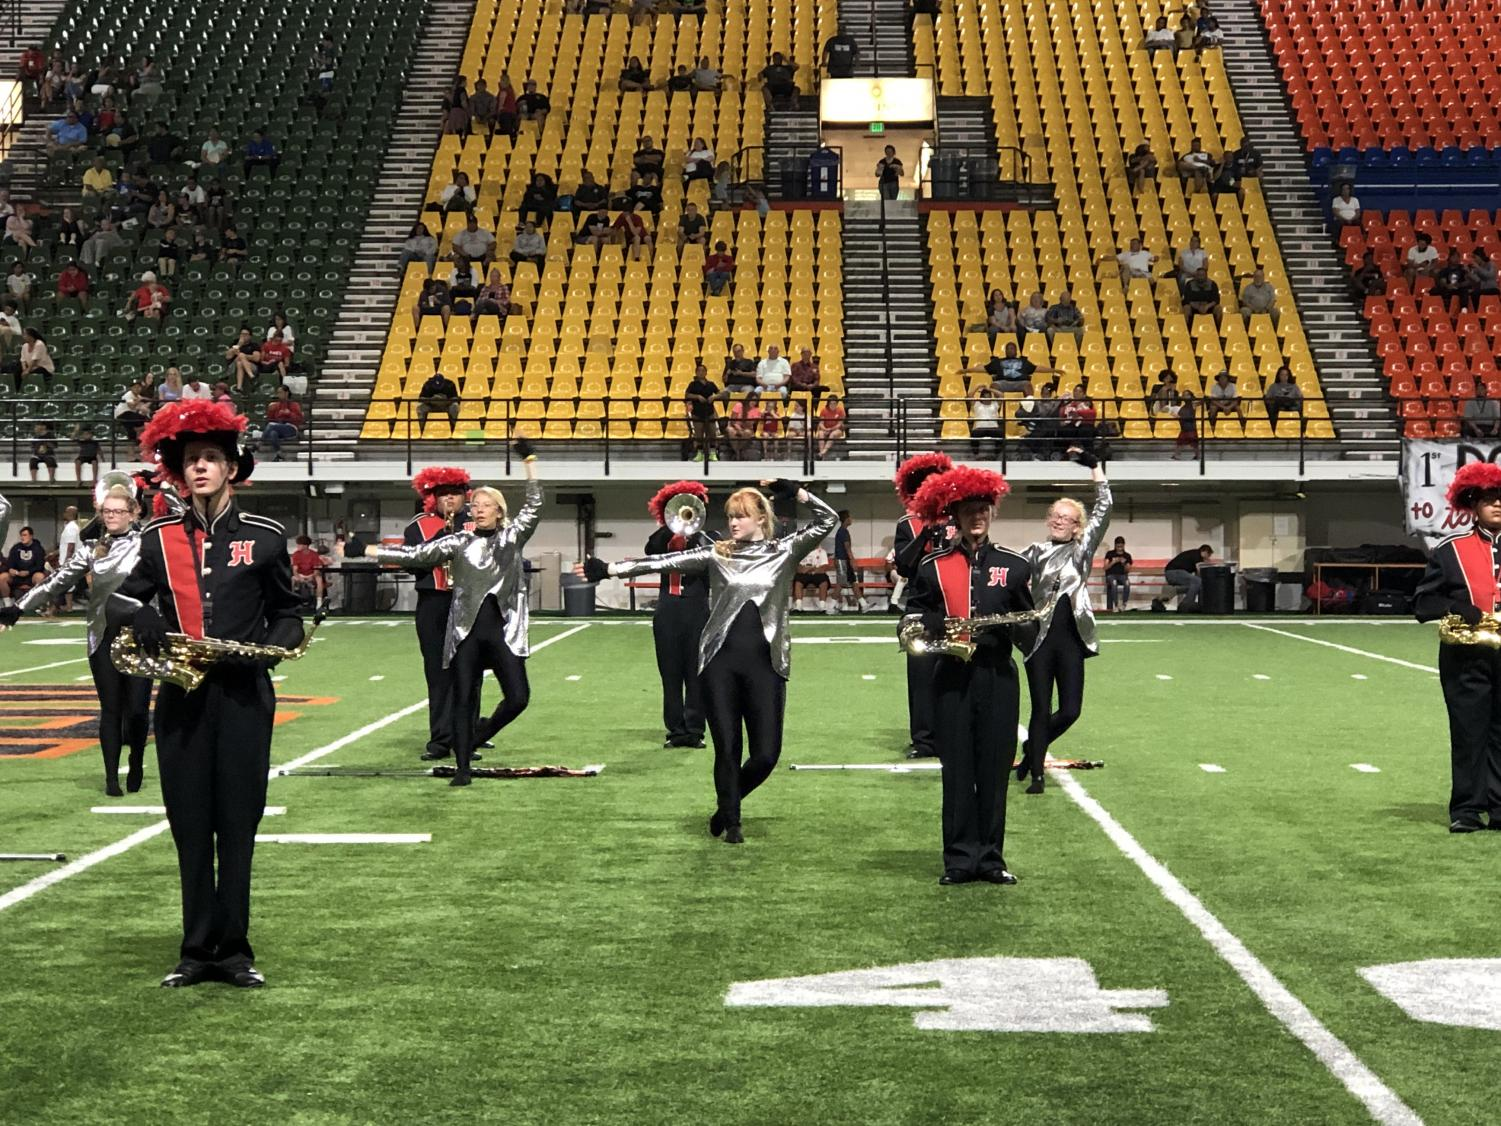 Marching band performance at ISU holt arena. Saturday, 8:40 p.m.